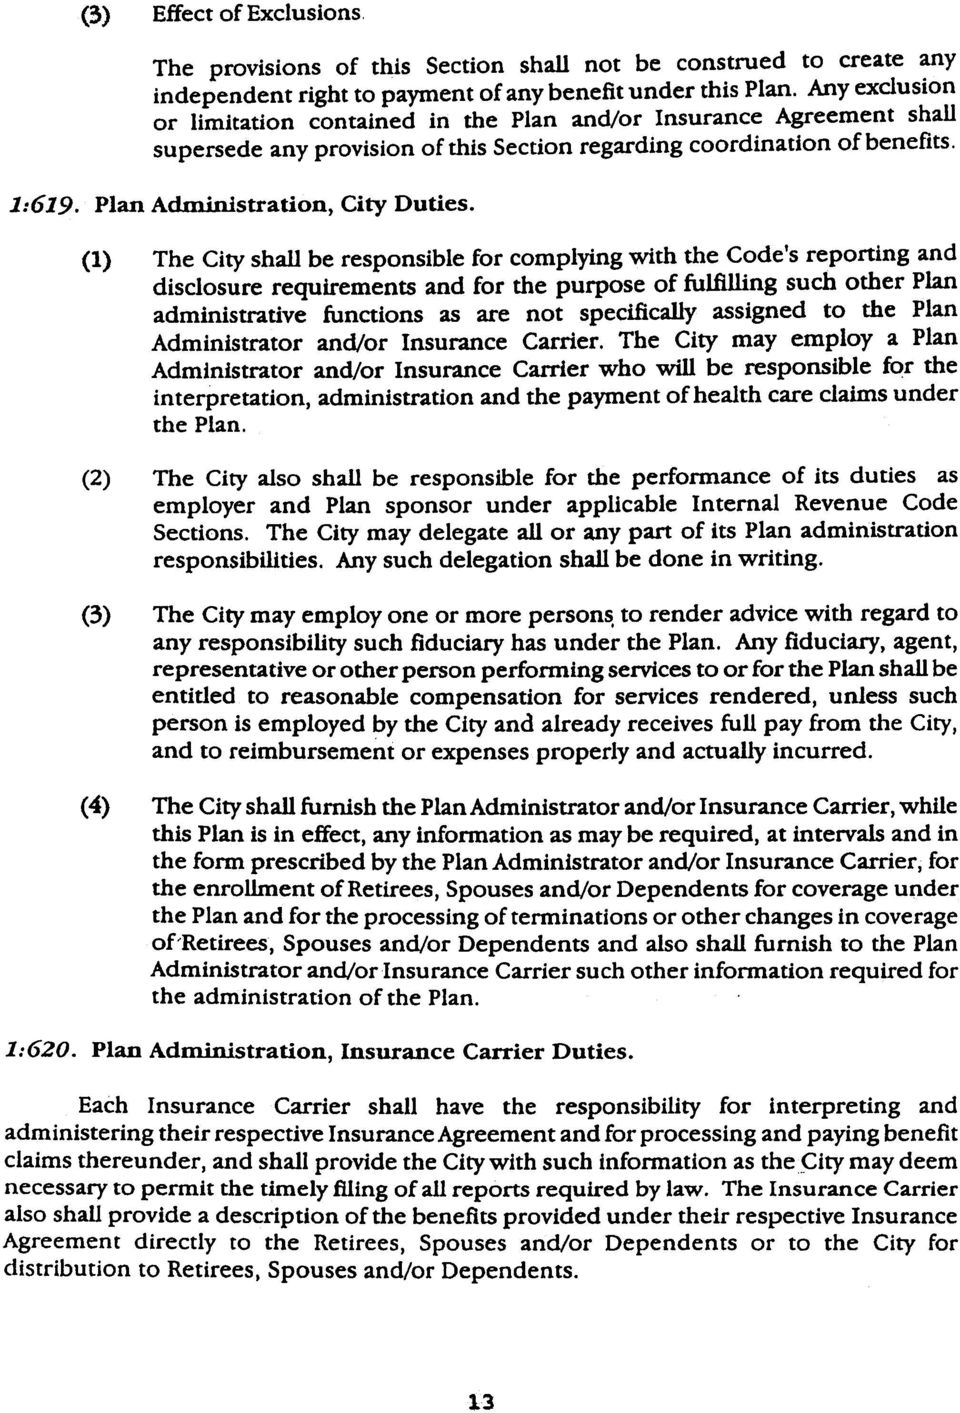 (1) The City shall be responsible for complying with the Code's reporting and disclosure requirements and for the purpose of fulfilling such other Plan administrative functions as are not